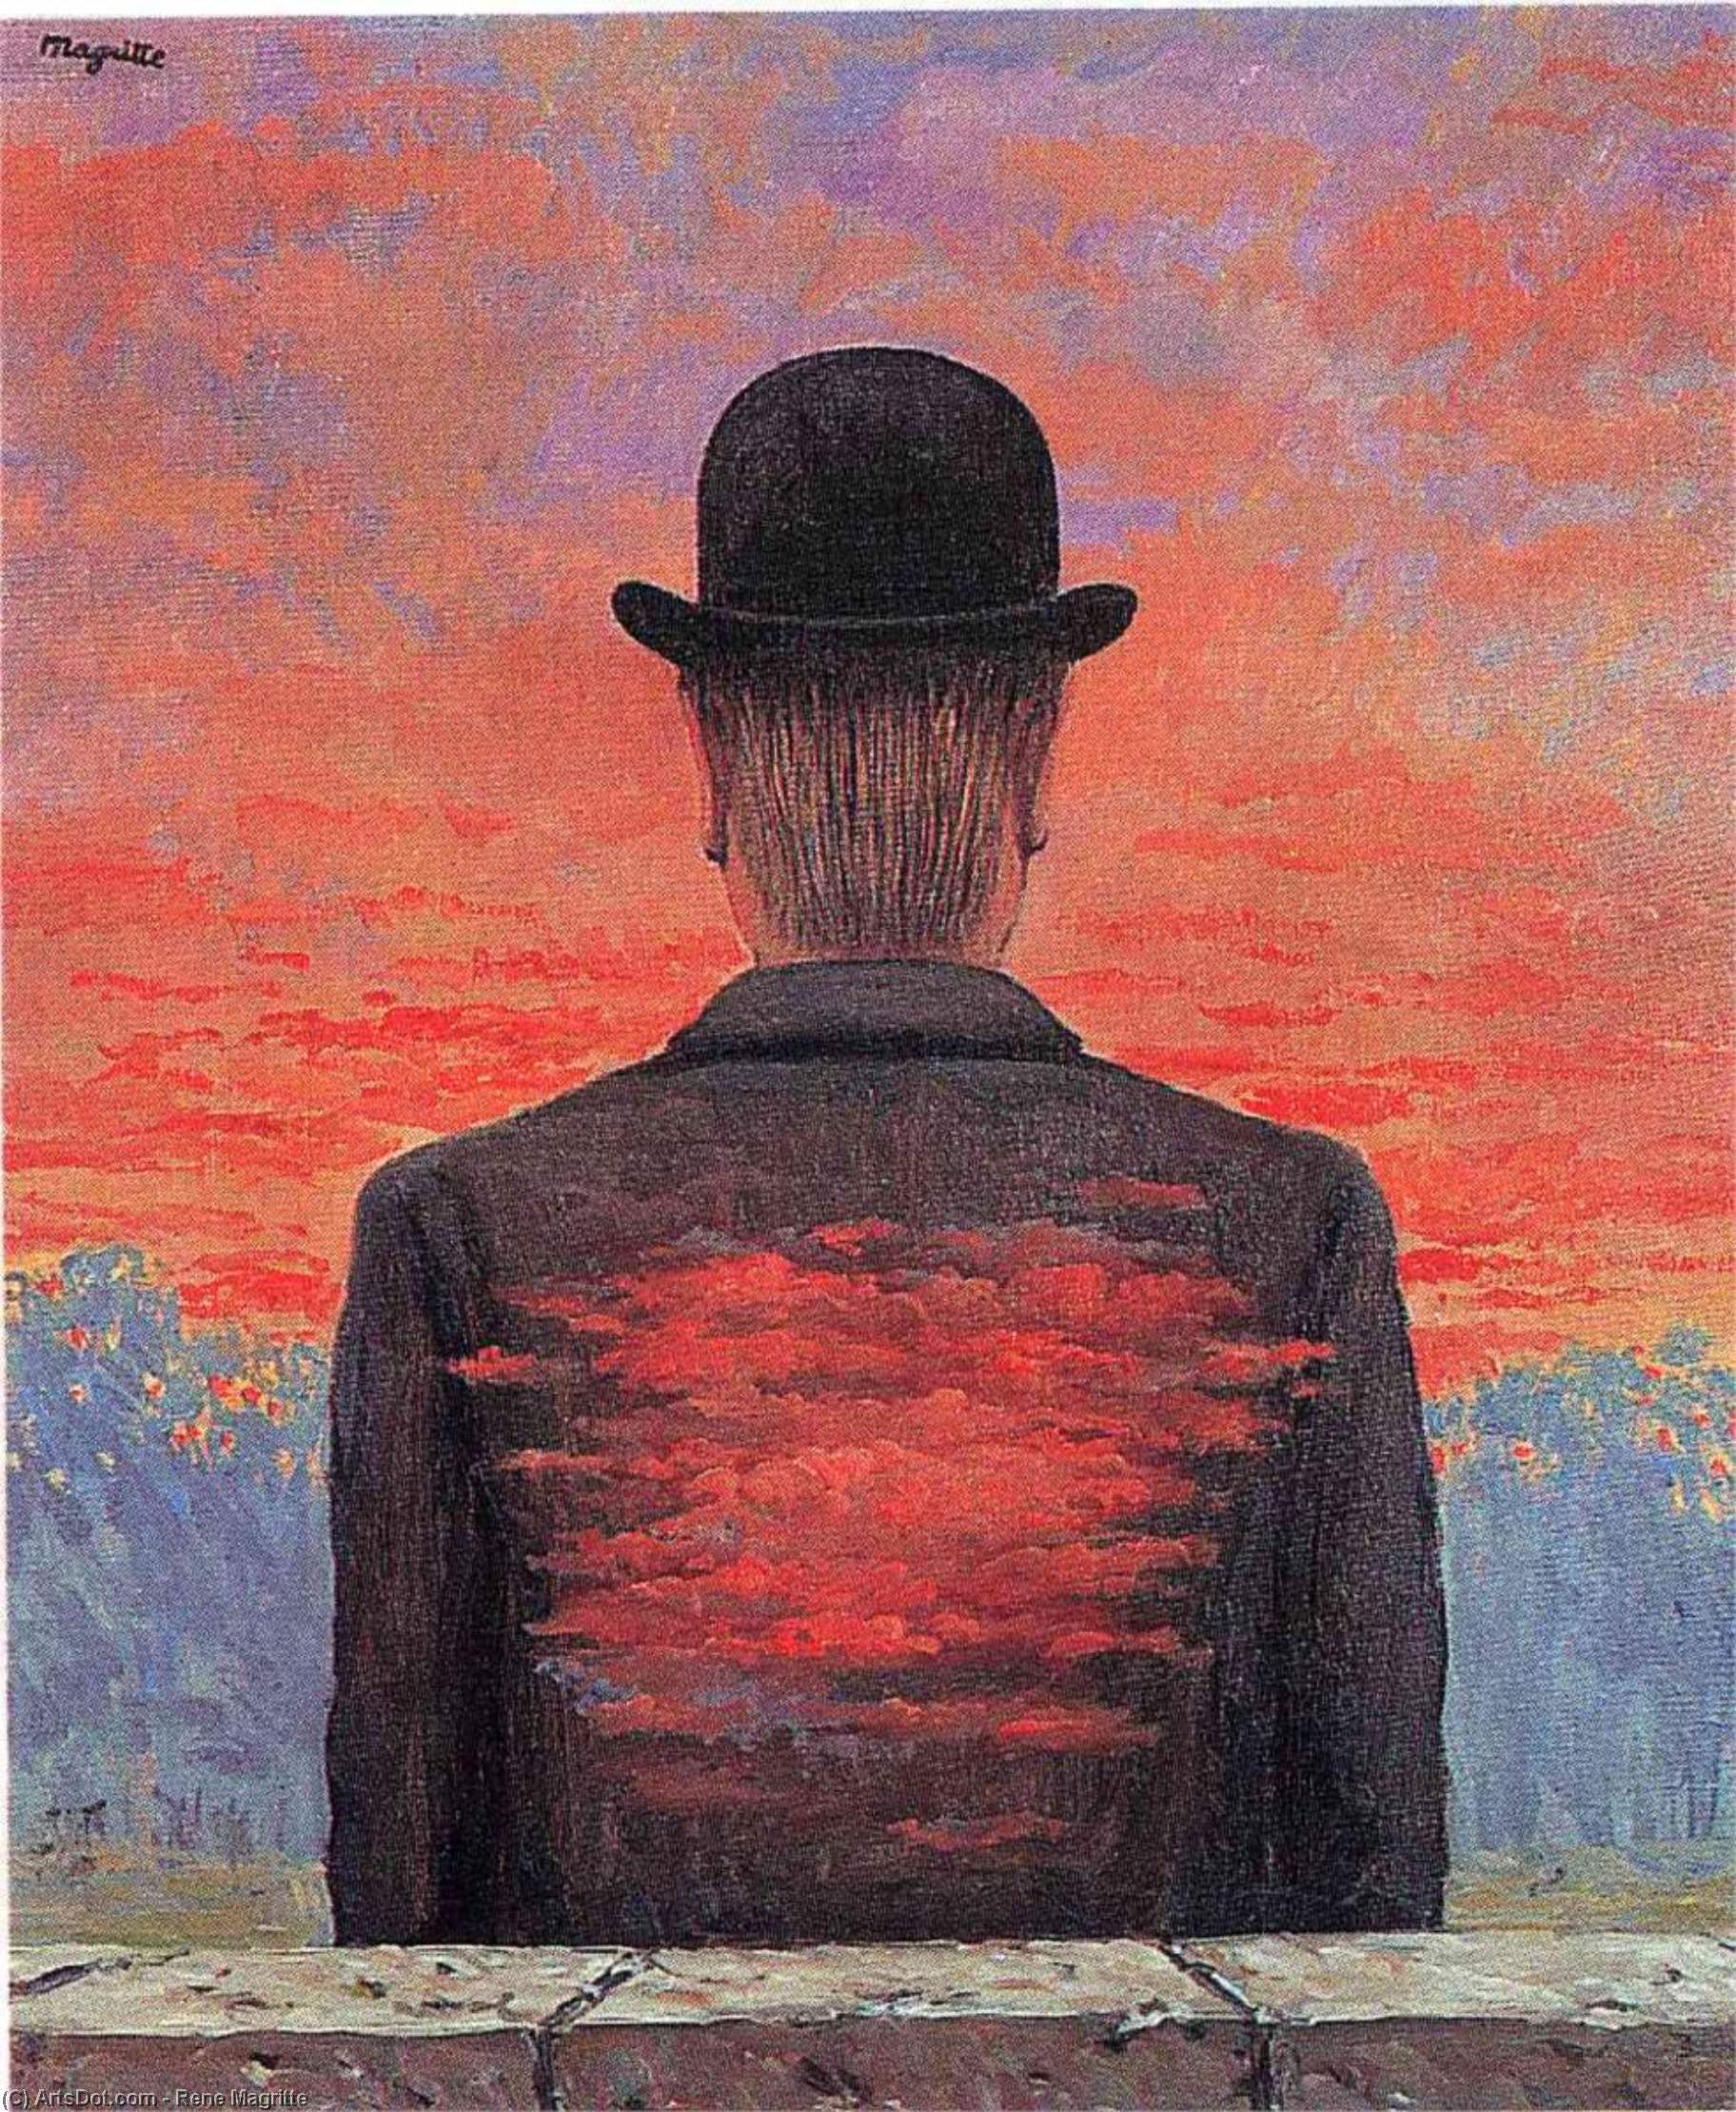 The poet recompensed, 1956 by Rene Magritte (1898-1967, Belgium)